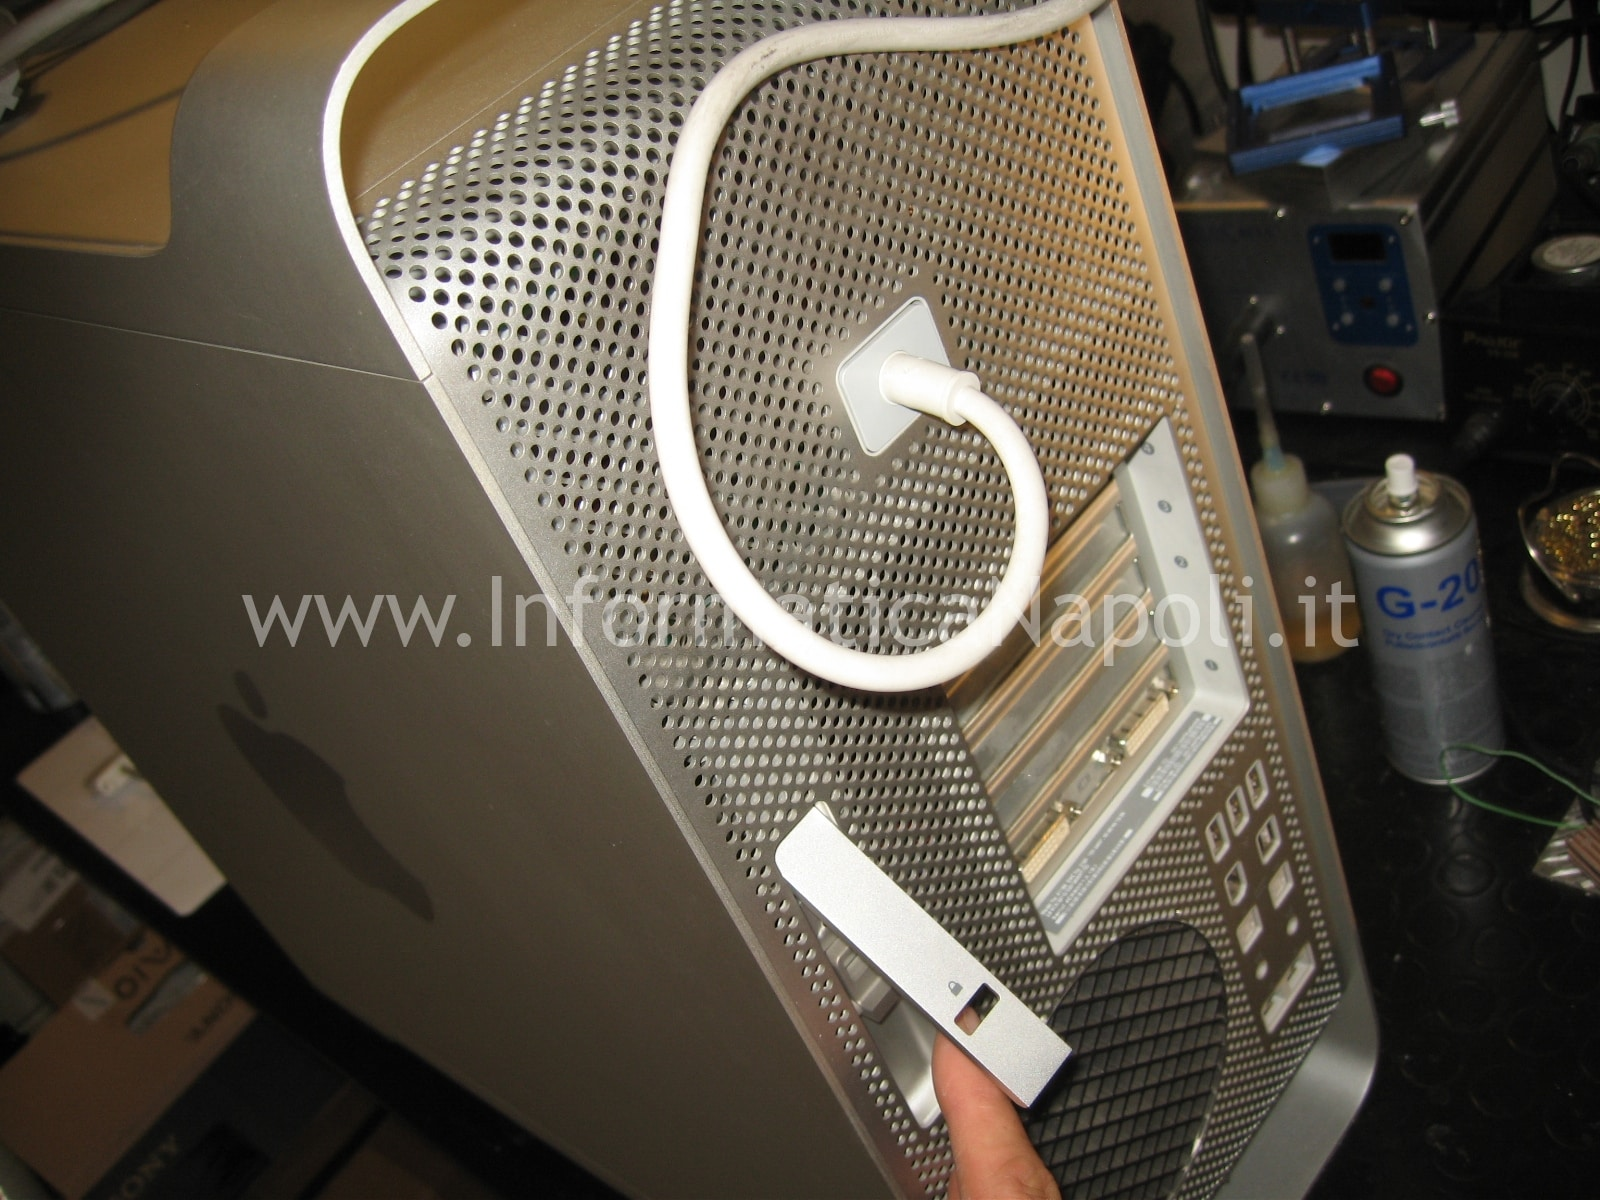 come aprire Apple Mac Pro A1186 EMC 2180